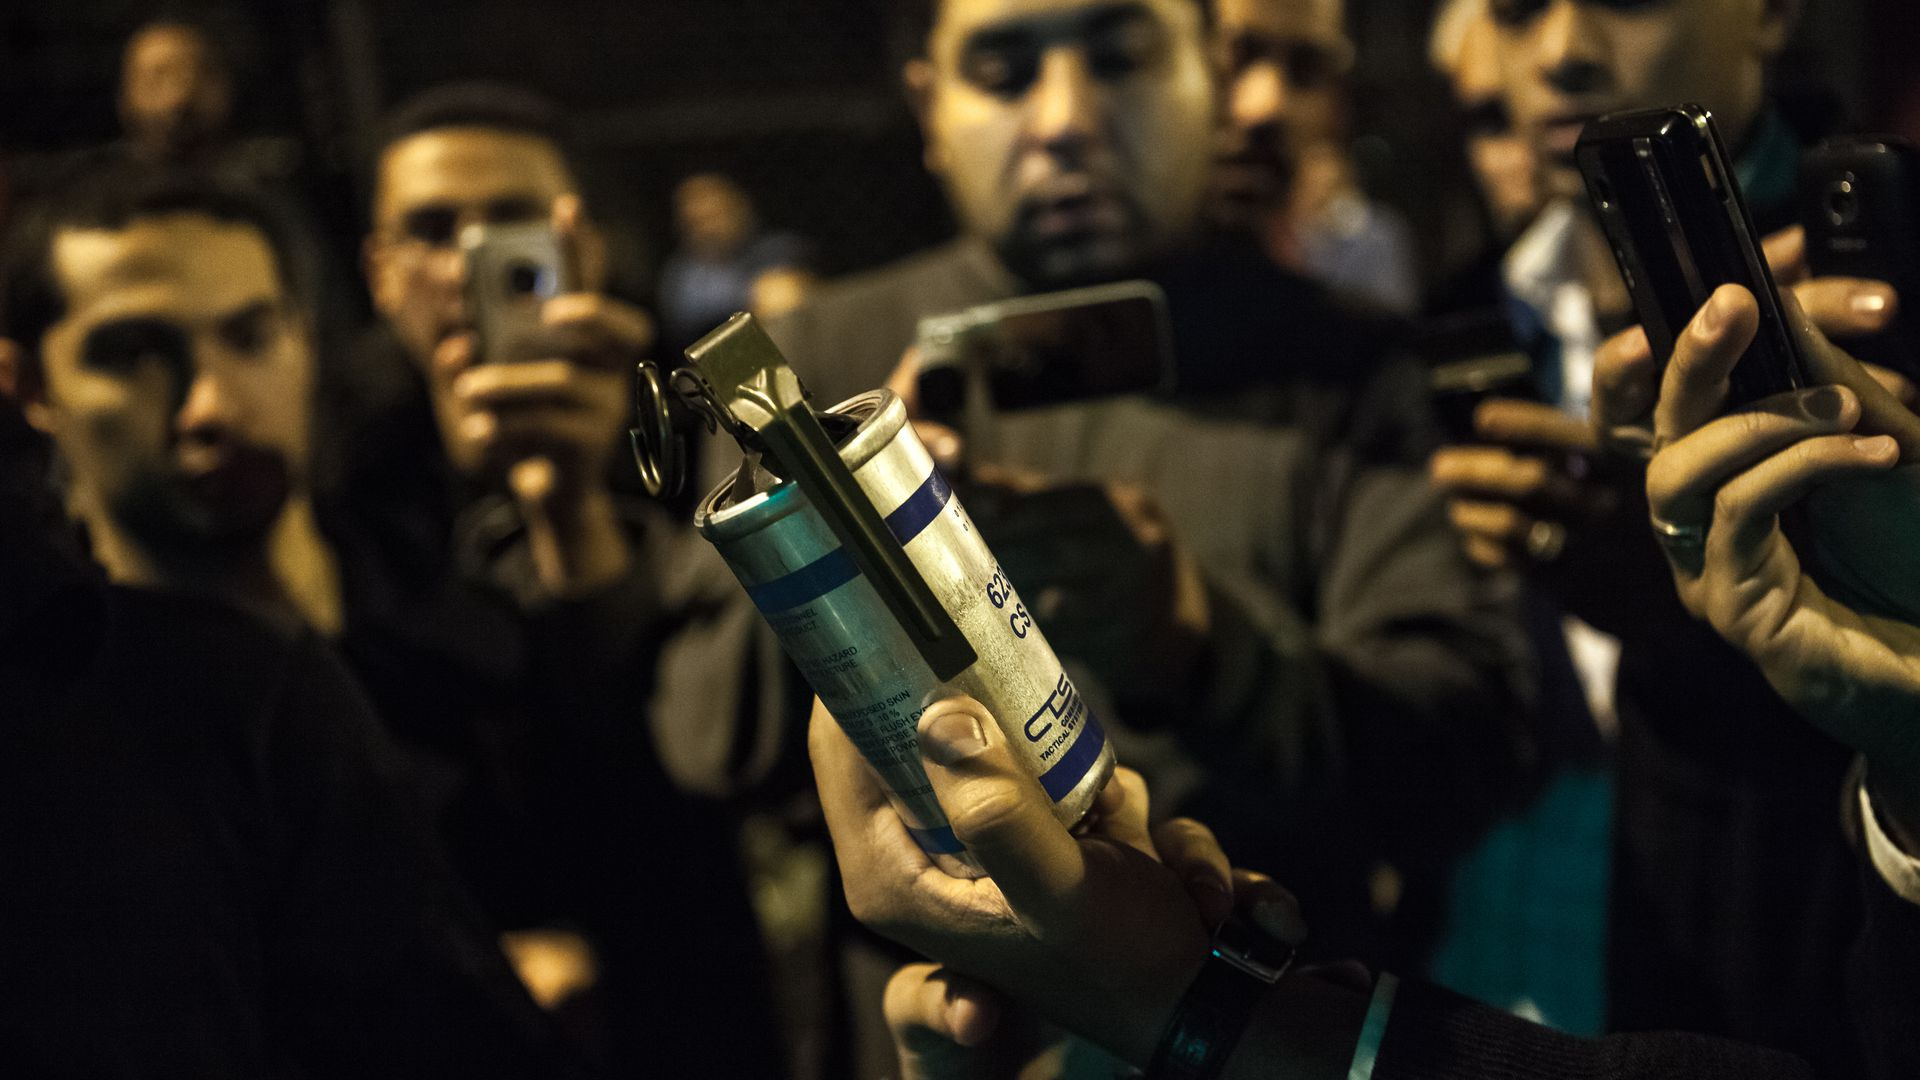 Protestor holding up a canister of tear gas